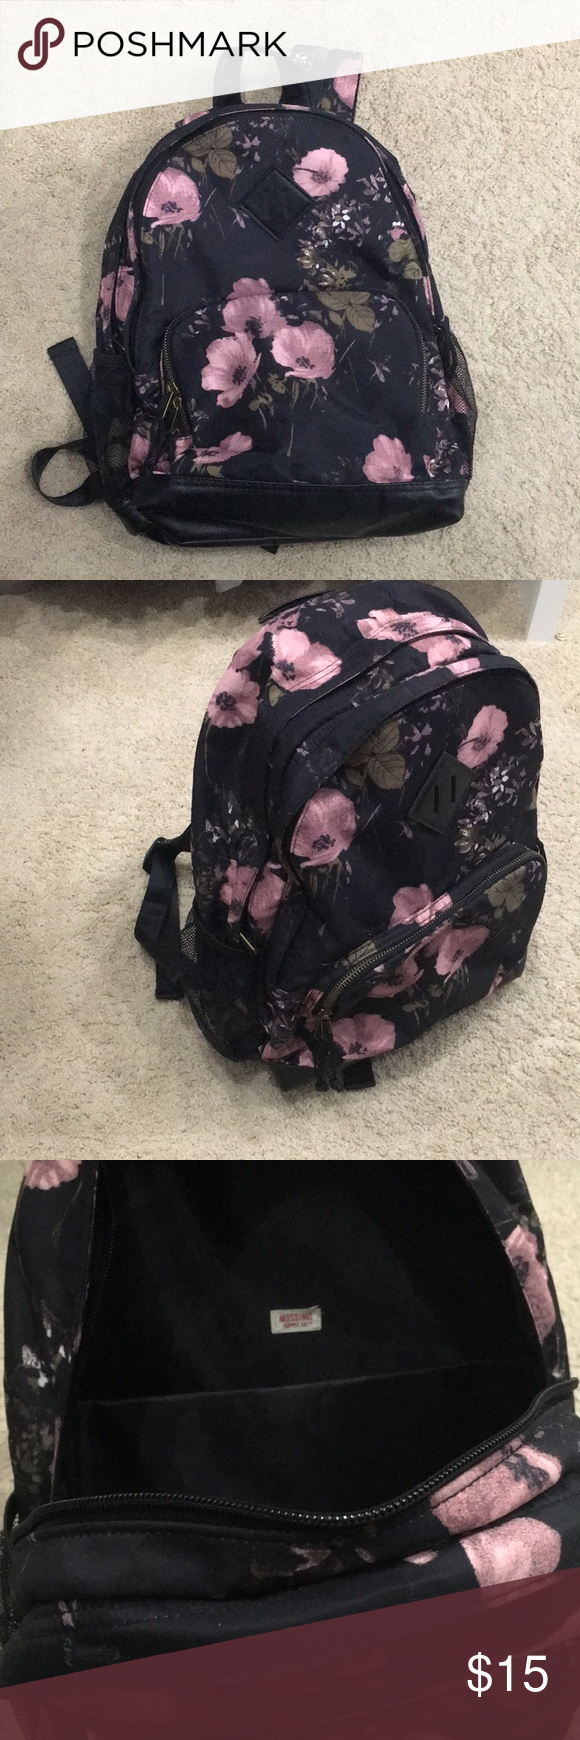 Mission floral backpack In great condition, like new! Mossimo Supply Co. Bags Backpacks